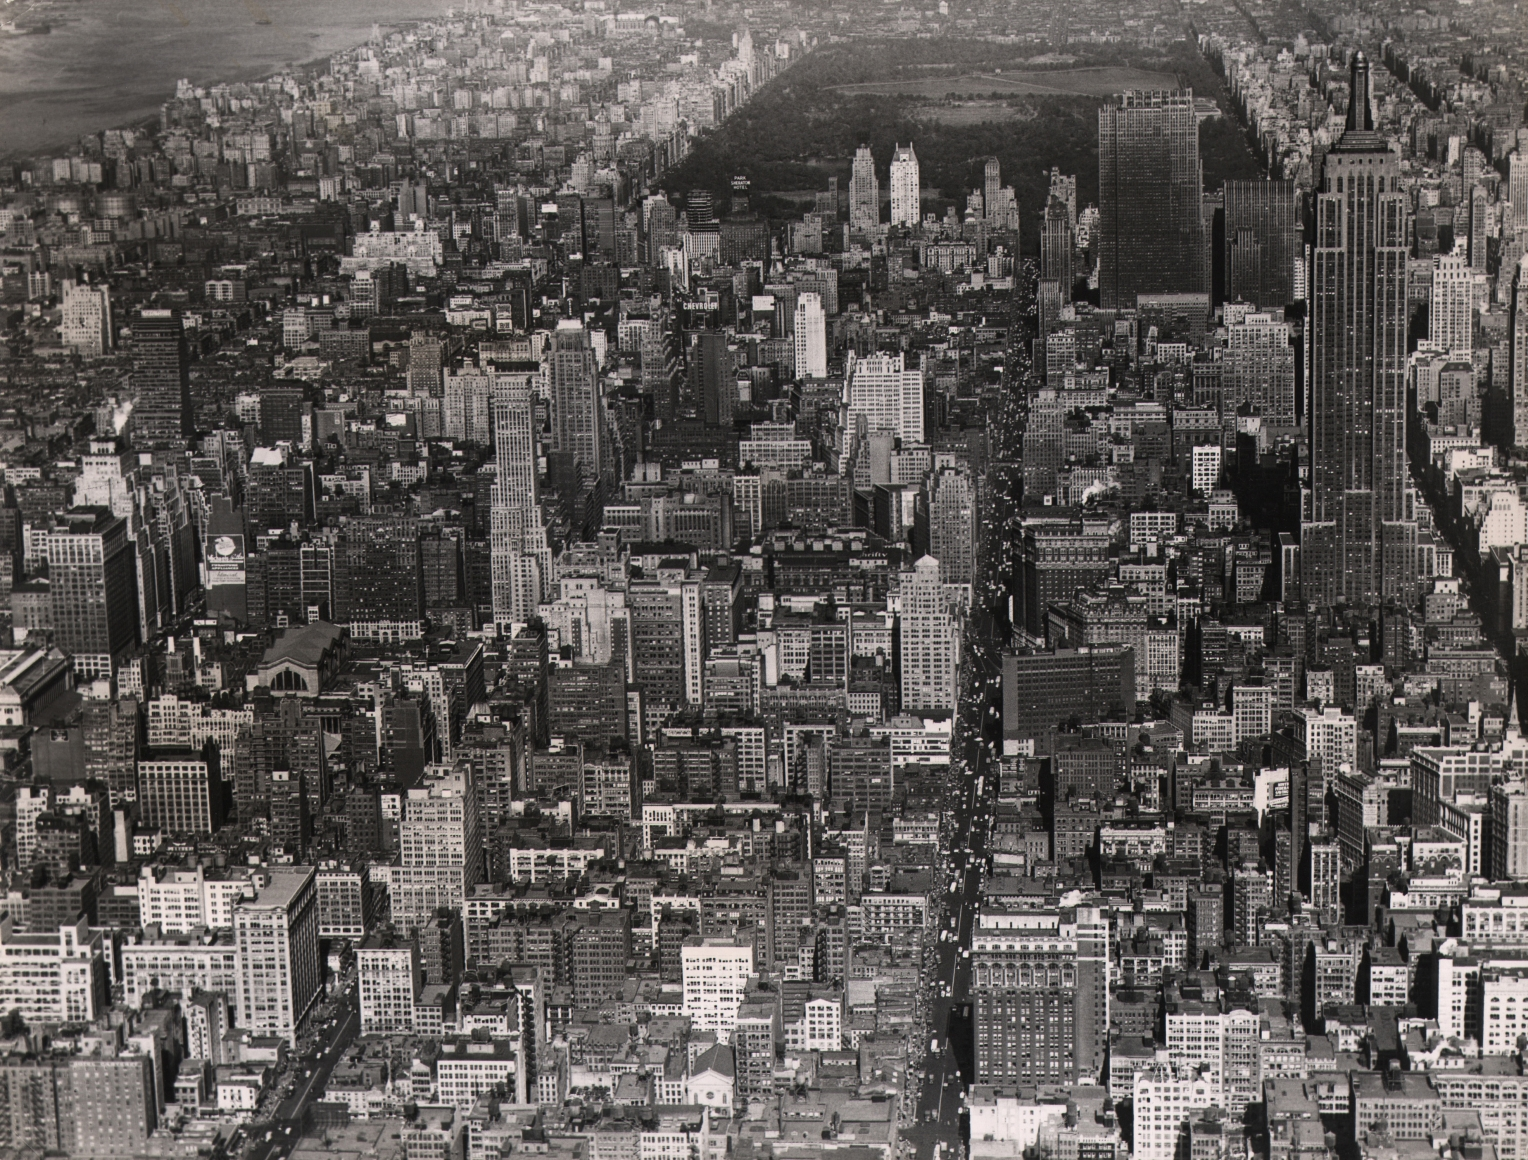 37. Charles E. Rotkin, Aerial View of New York City, c. 1948. Aerial view in a horizontal composition with the Empire State Building in the top right of the frame.